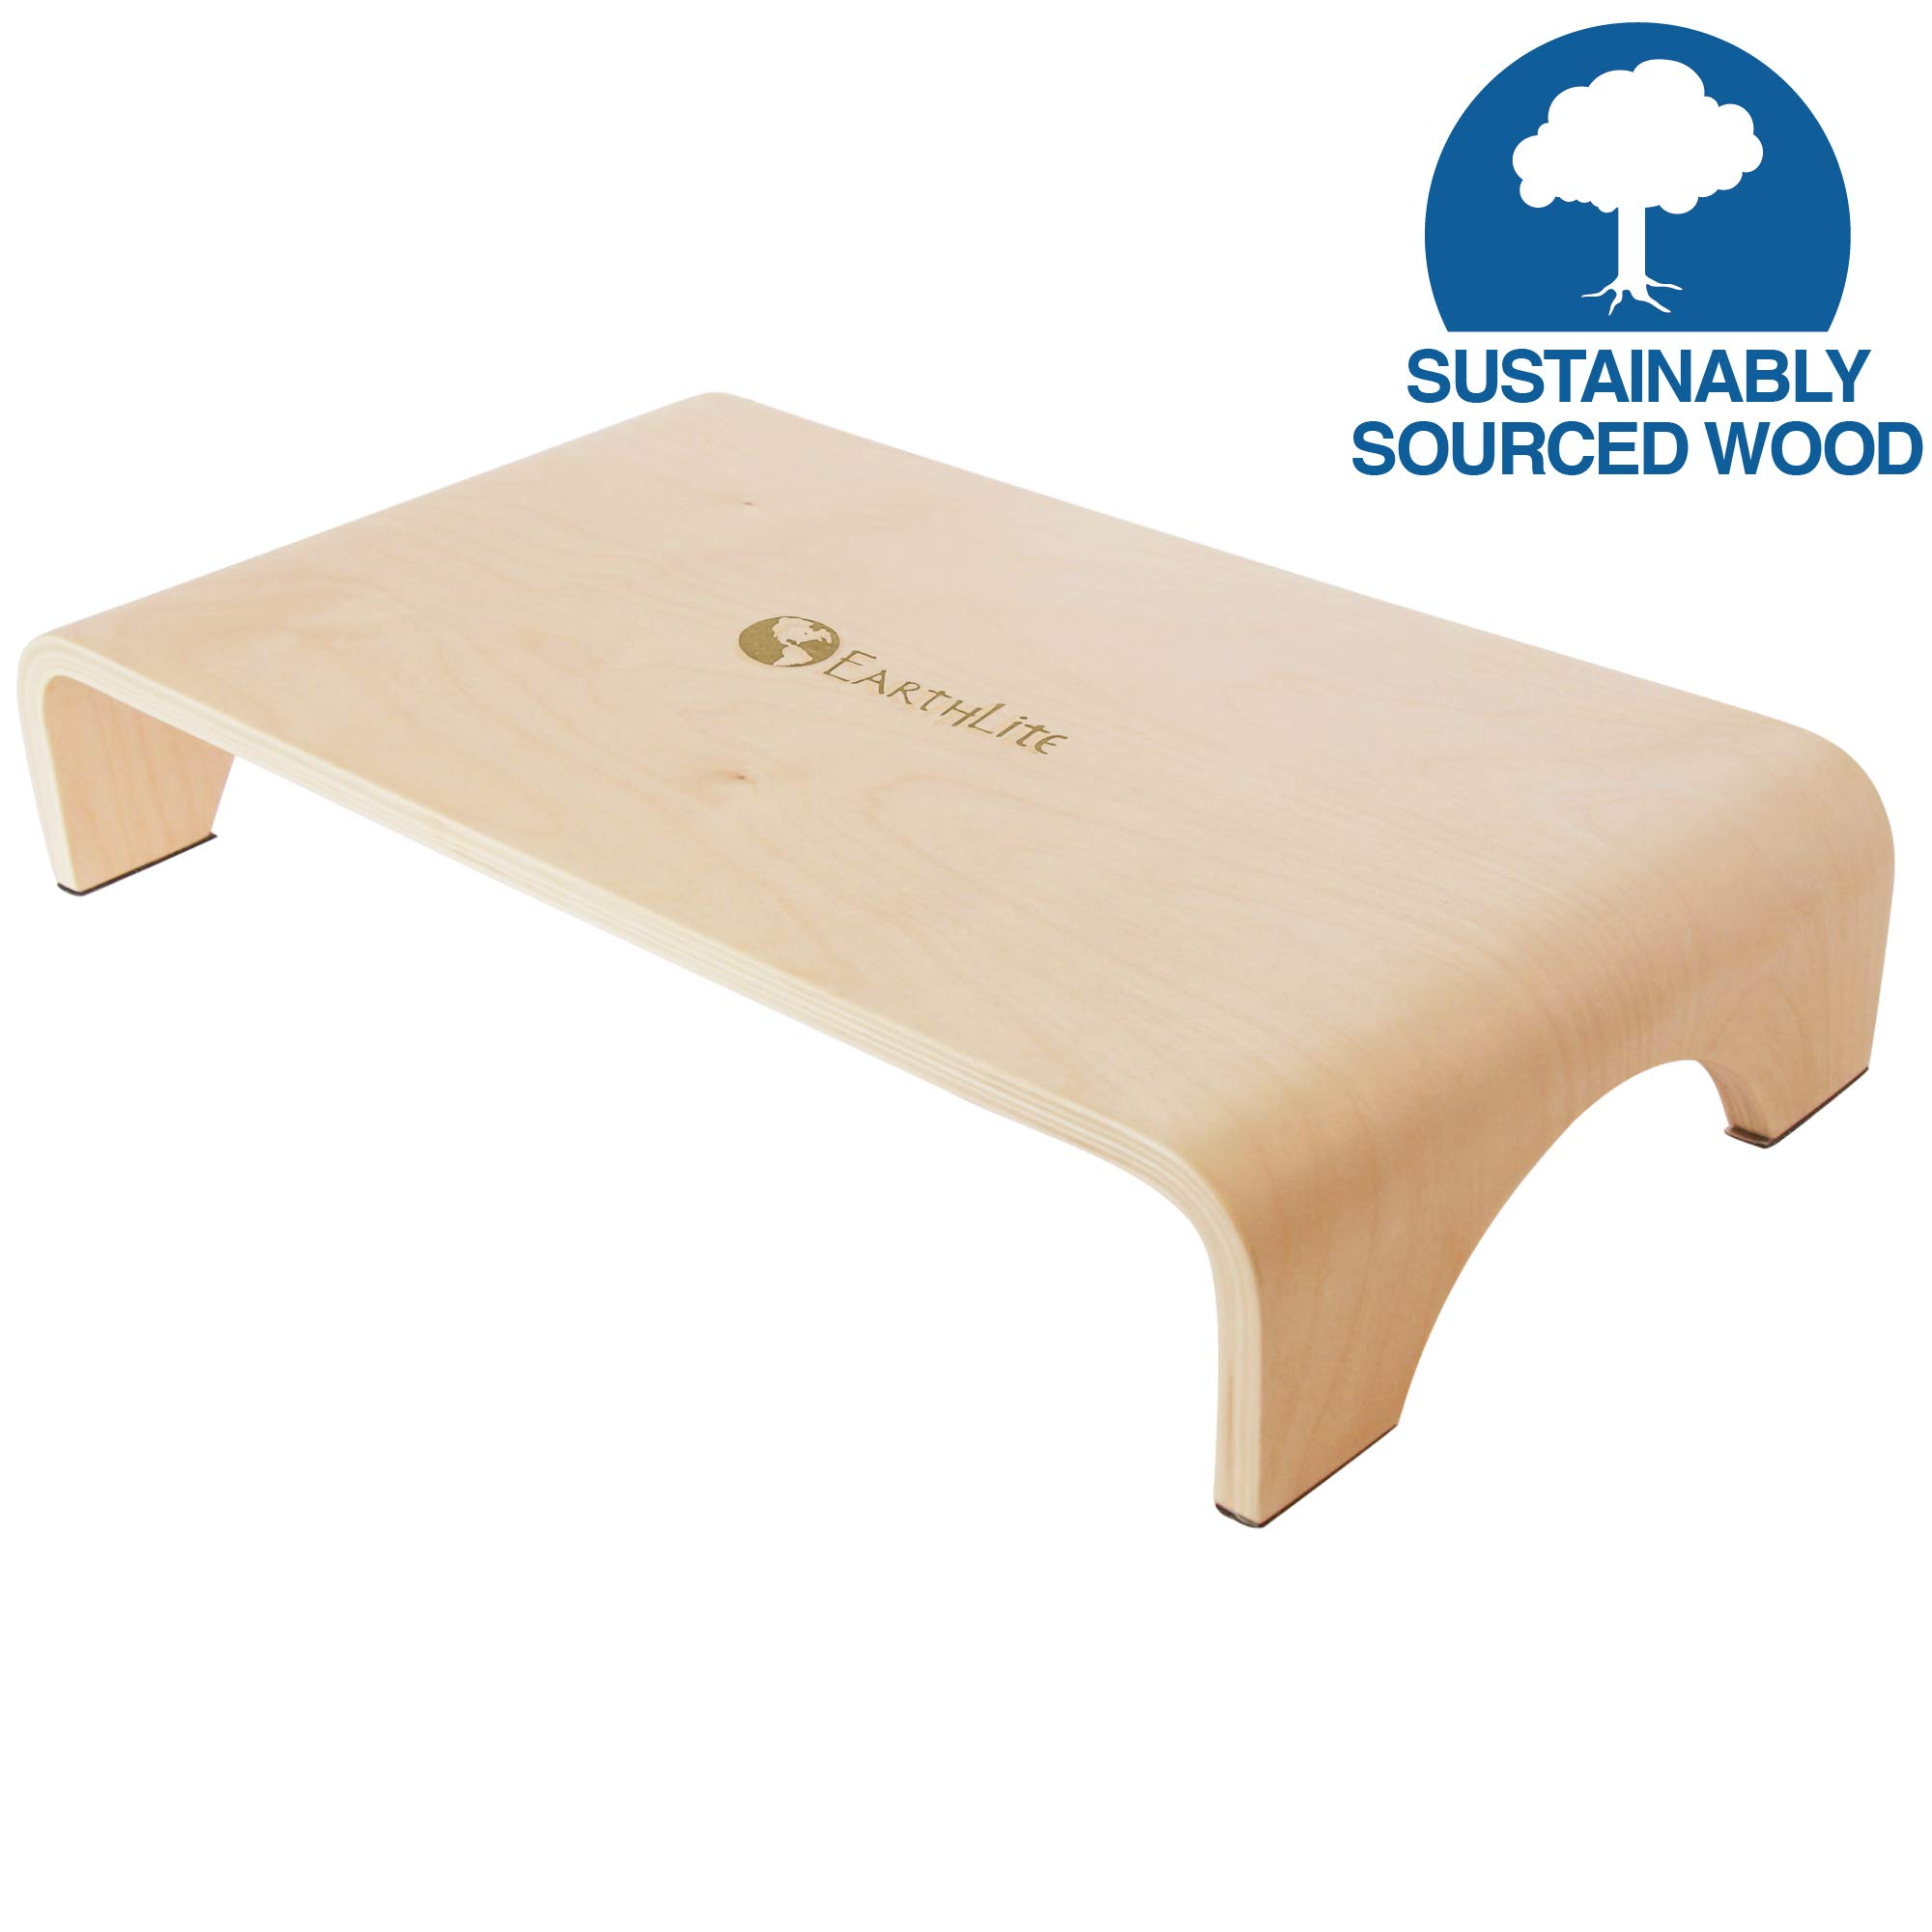 EARTHLITE Wooden Step Stool - 7'' High, Large Surface, Strong & Stable Bed Step, Foot Stool, Massage Step-Up by EARTHLITE